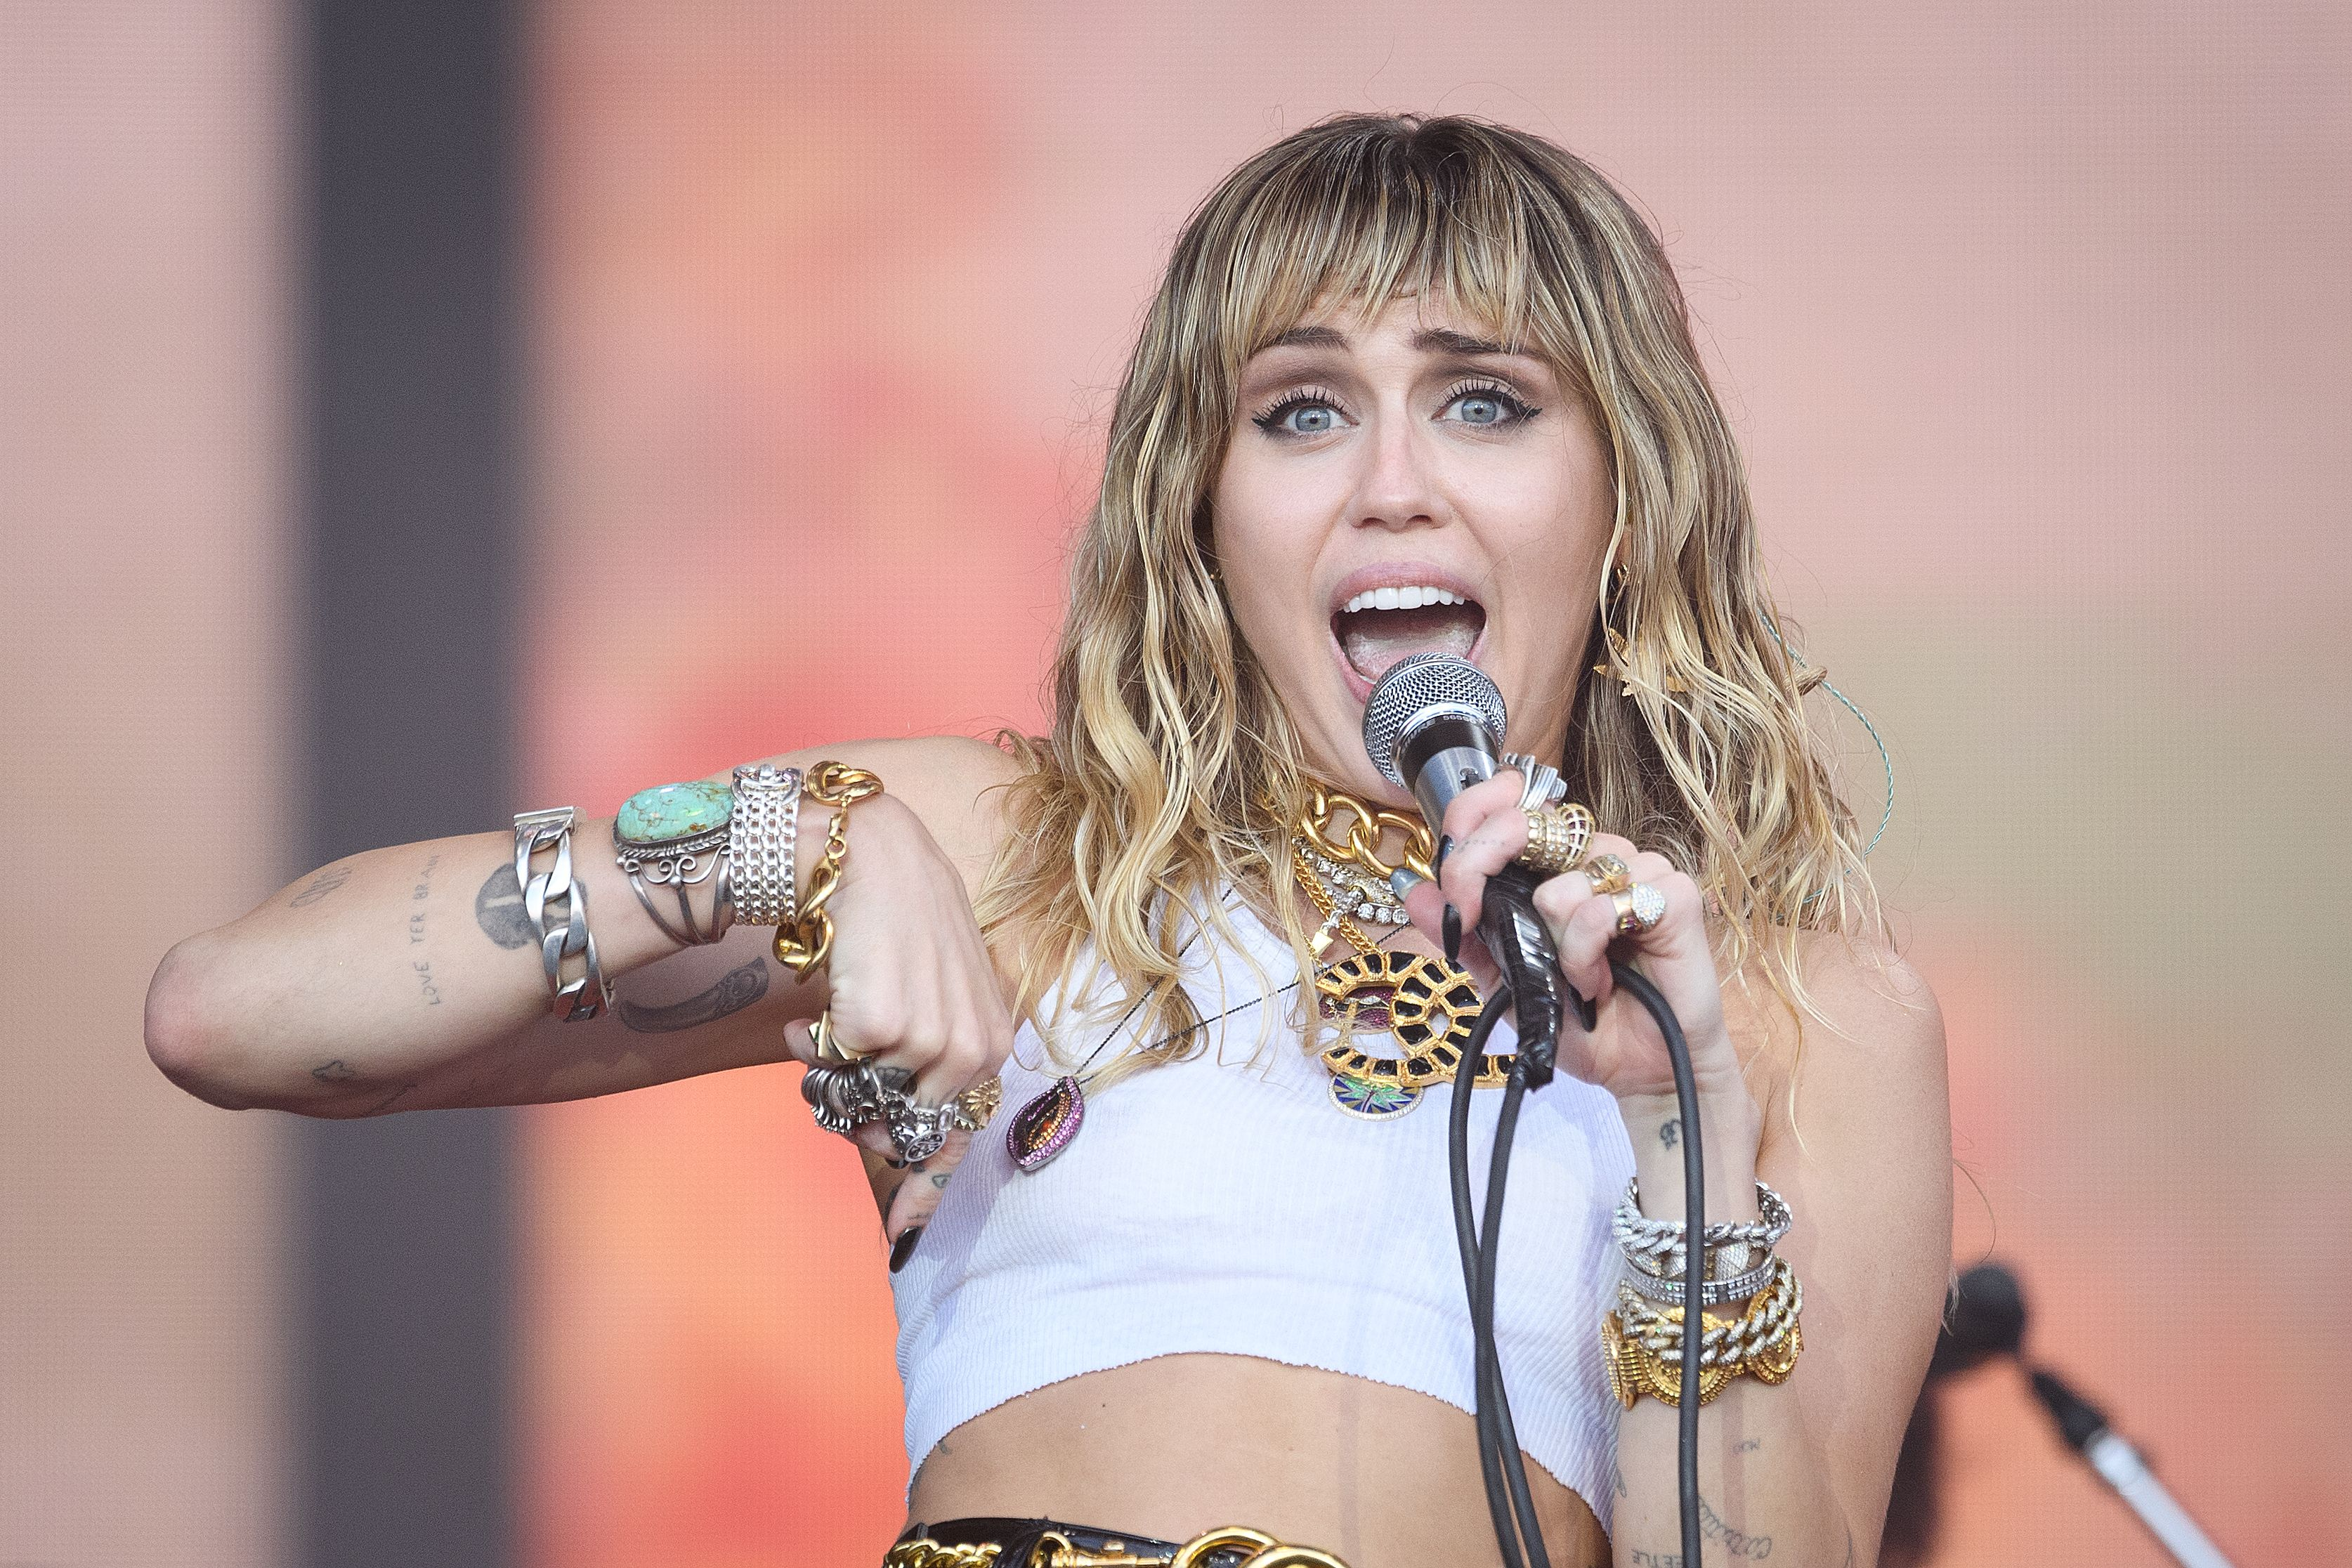 Miley Cyrus sings to a crowd, holding a microphone